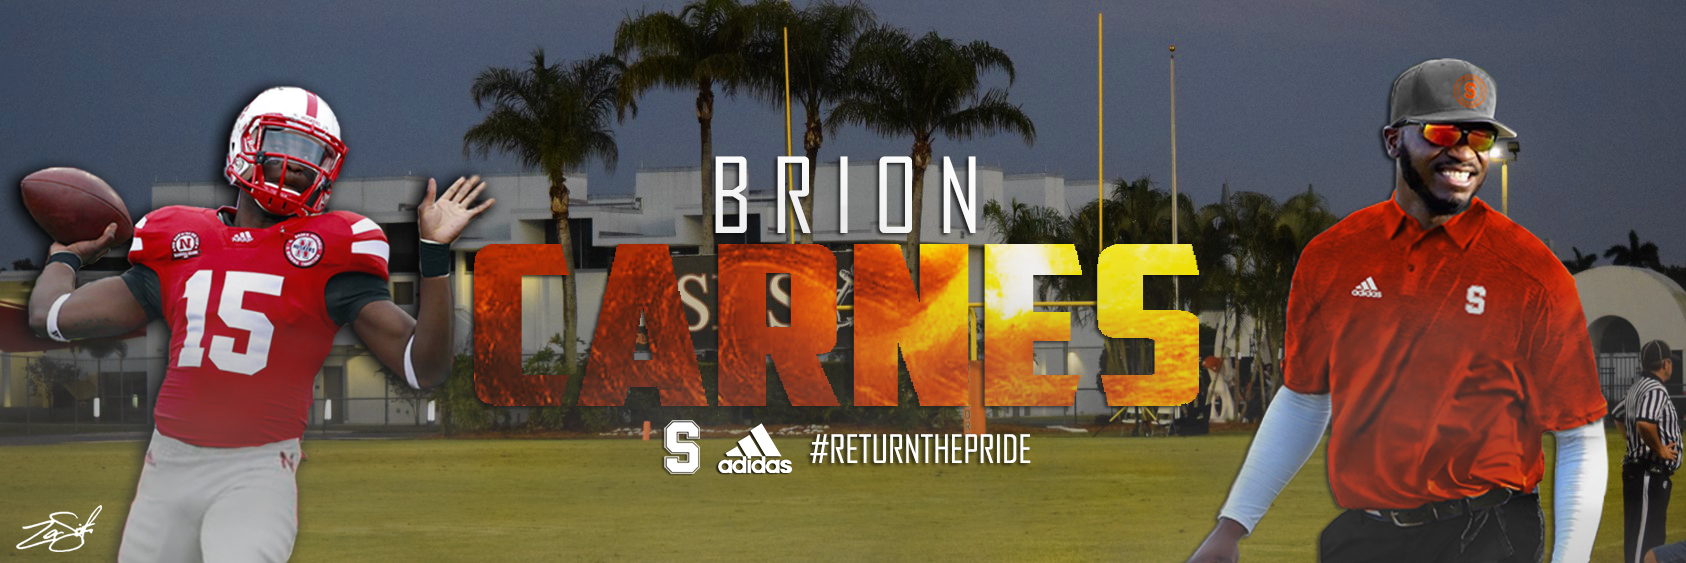 Coach Carnes Twitter Cover